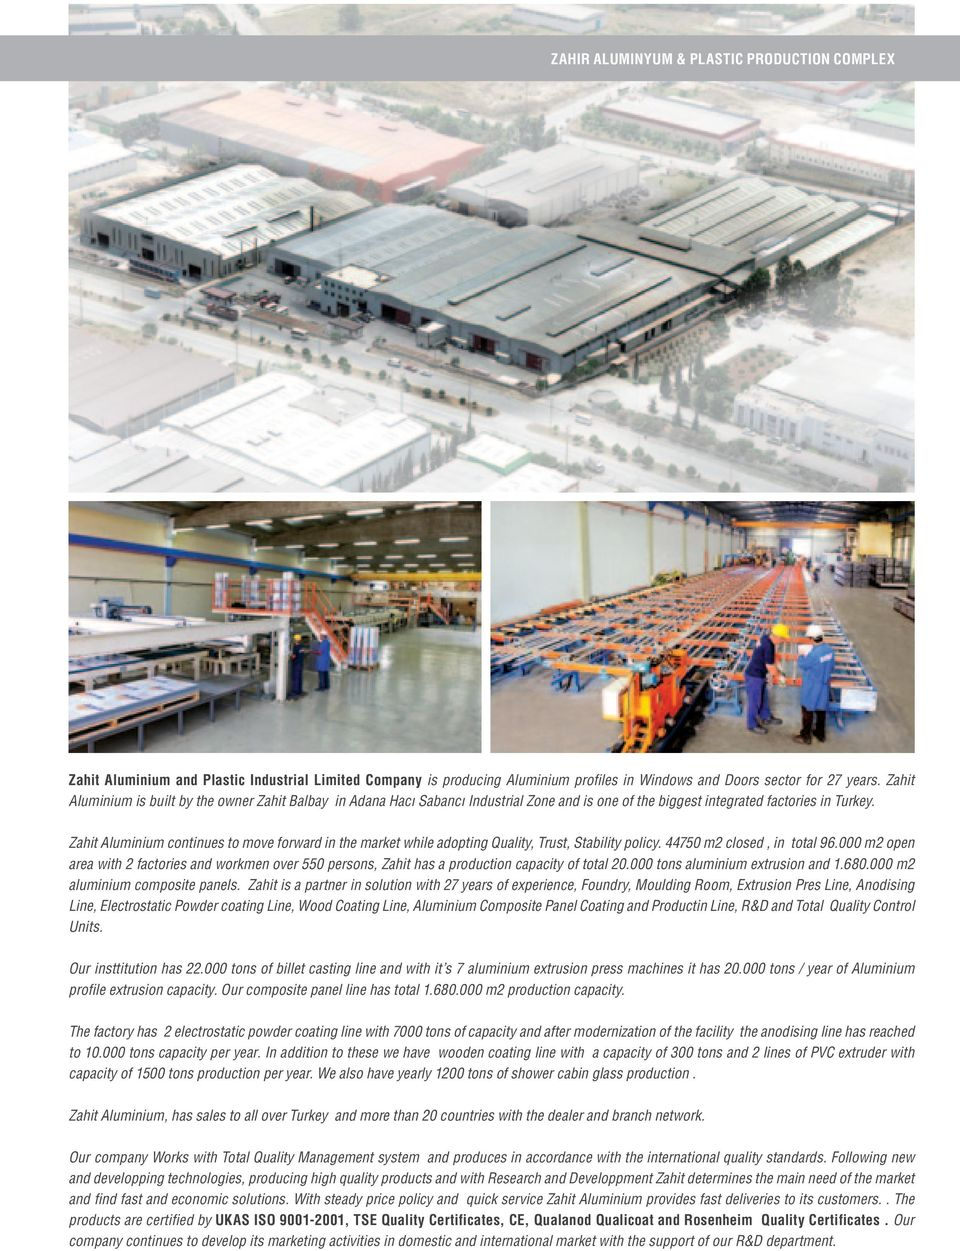 Zahit Aluminium continues to move forward in the market while adopting Quality, Trust, Stability policy. 44750 m2 closed, in total 96.